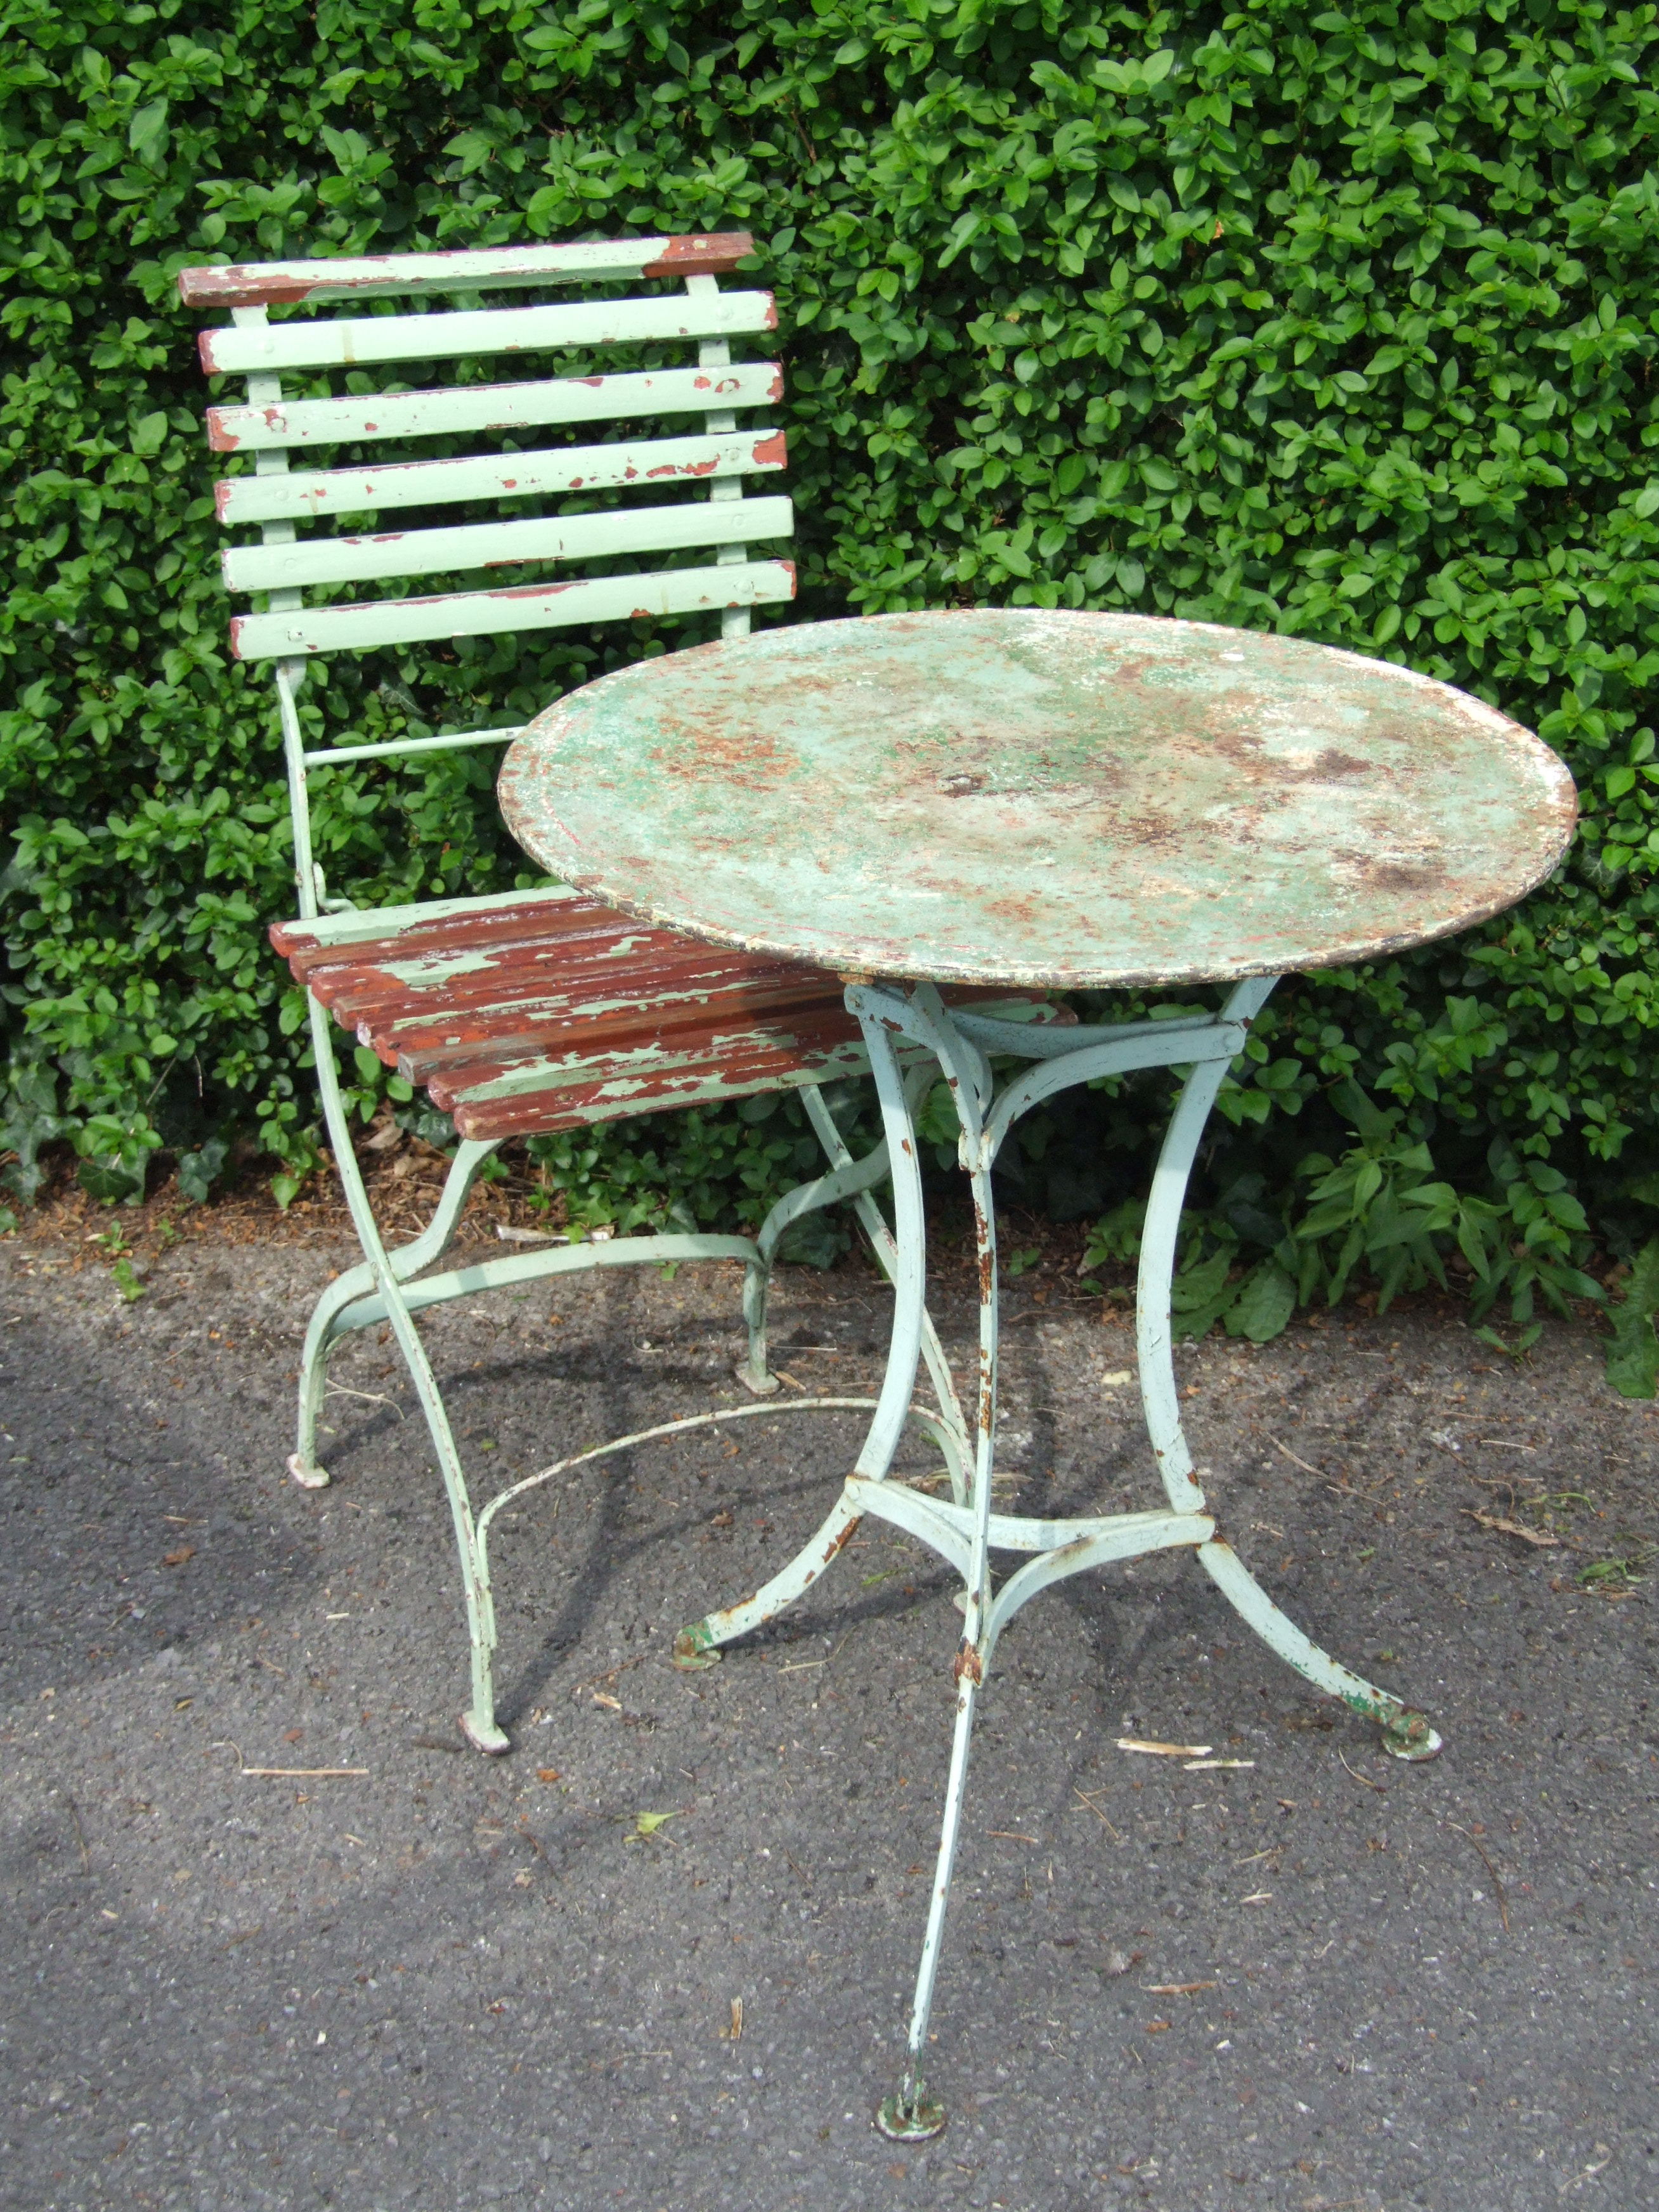 G200 S Vintage French Round Metal Pedestal Garden Patio Caf Table